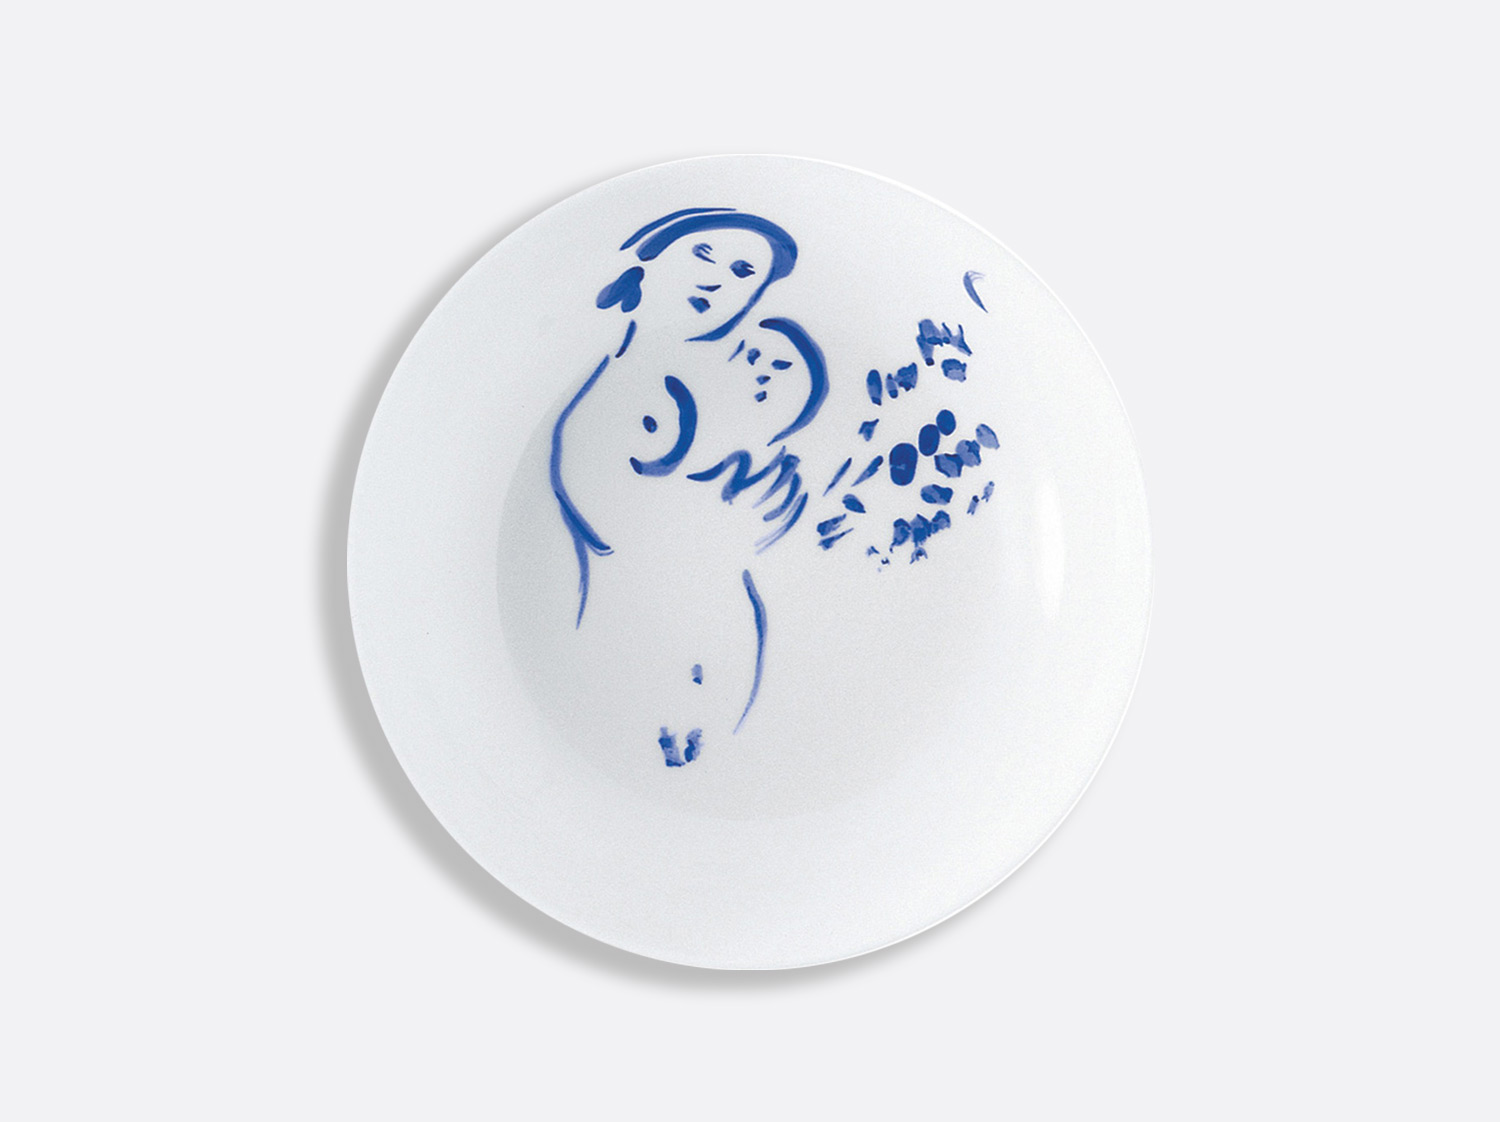 Assiette creuse maternite en porcelaine de la collection Pour ida Bernardaud